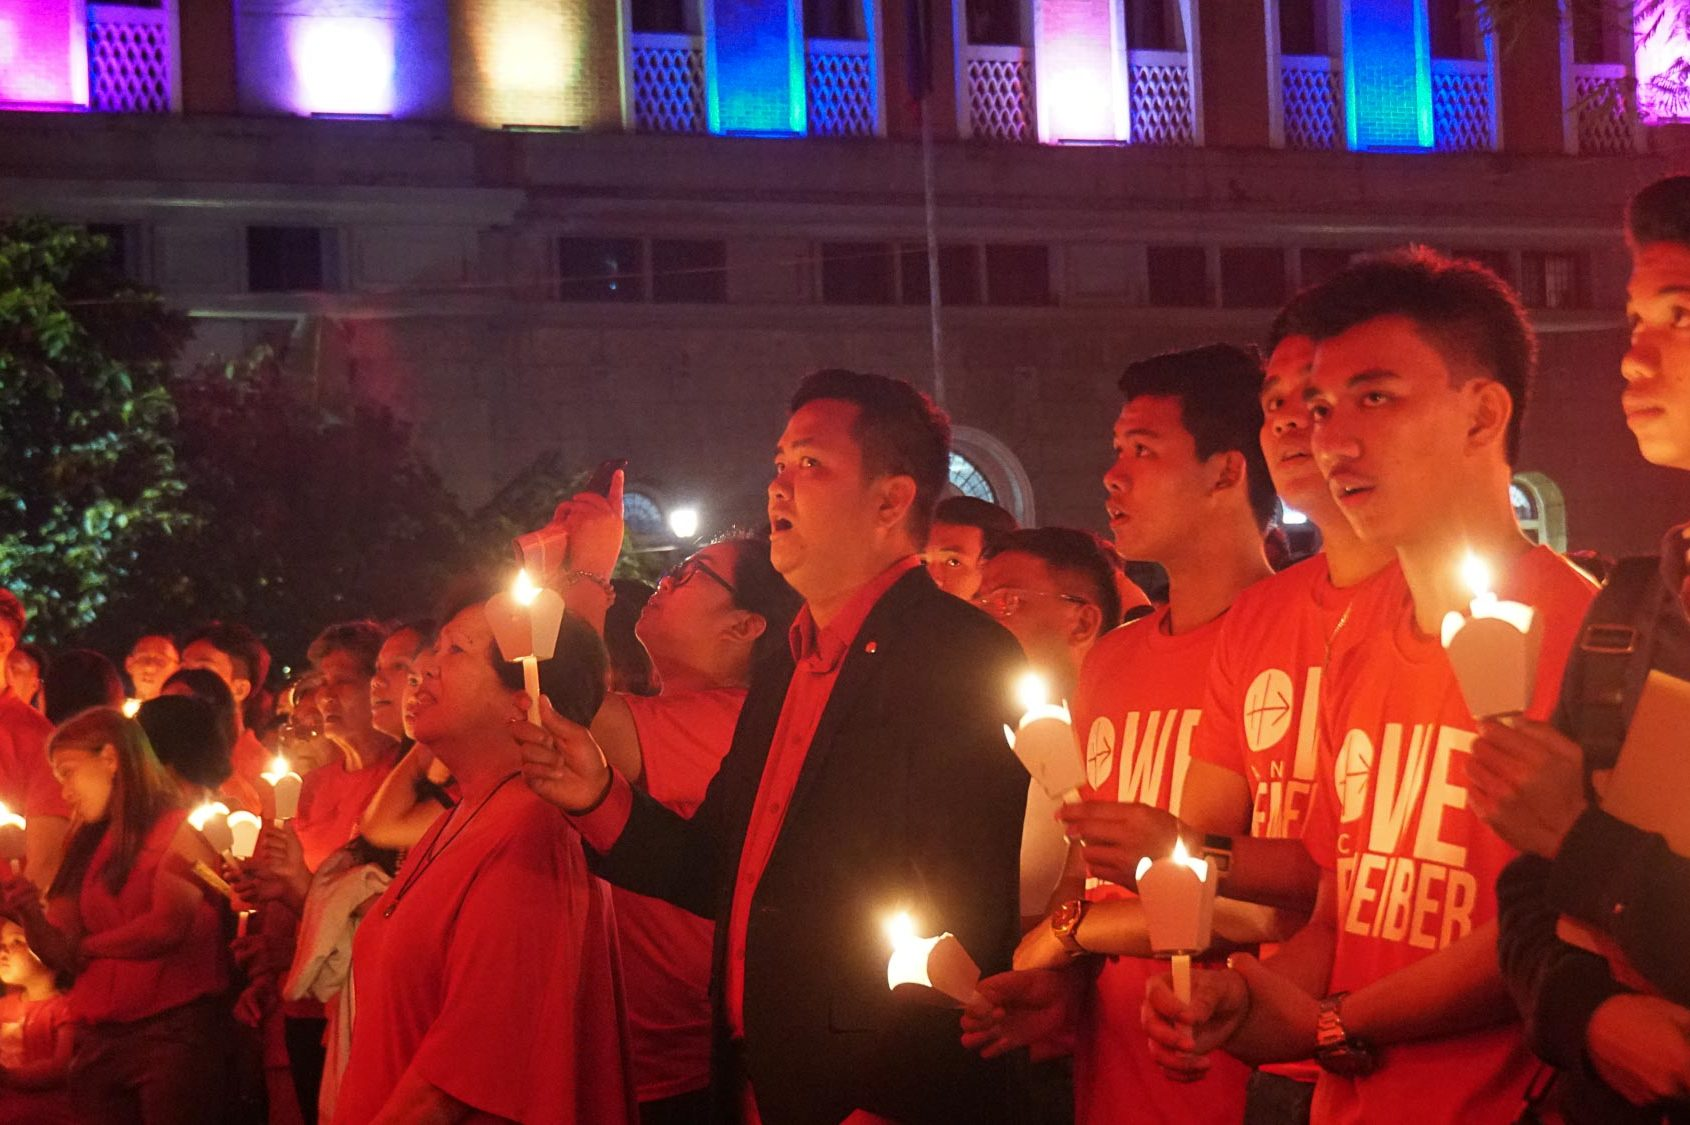 Jonathan Luciano (centre) during last November's #RedWednesday event in the Philippines (Credit: Aid to the Church in Need)